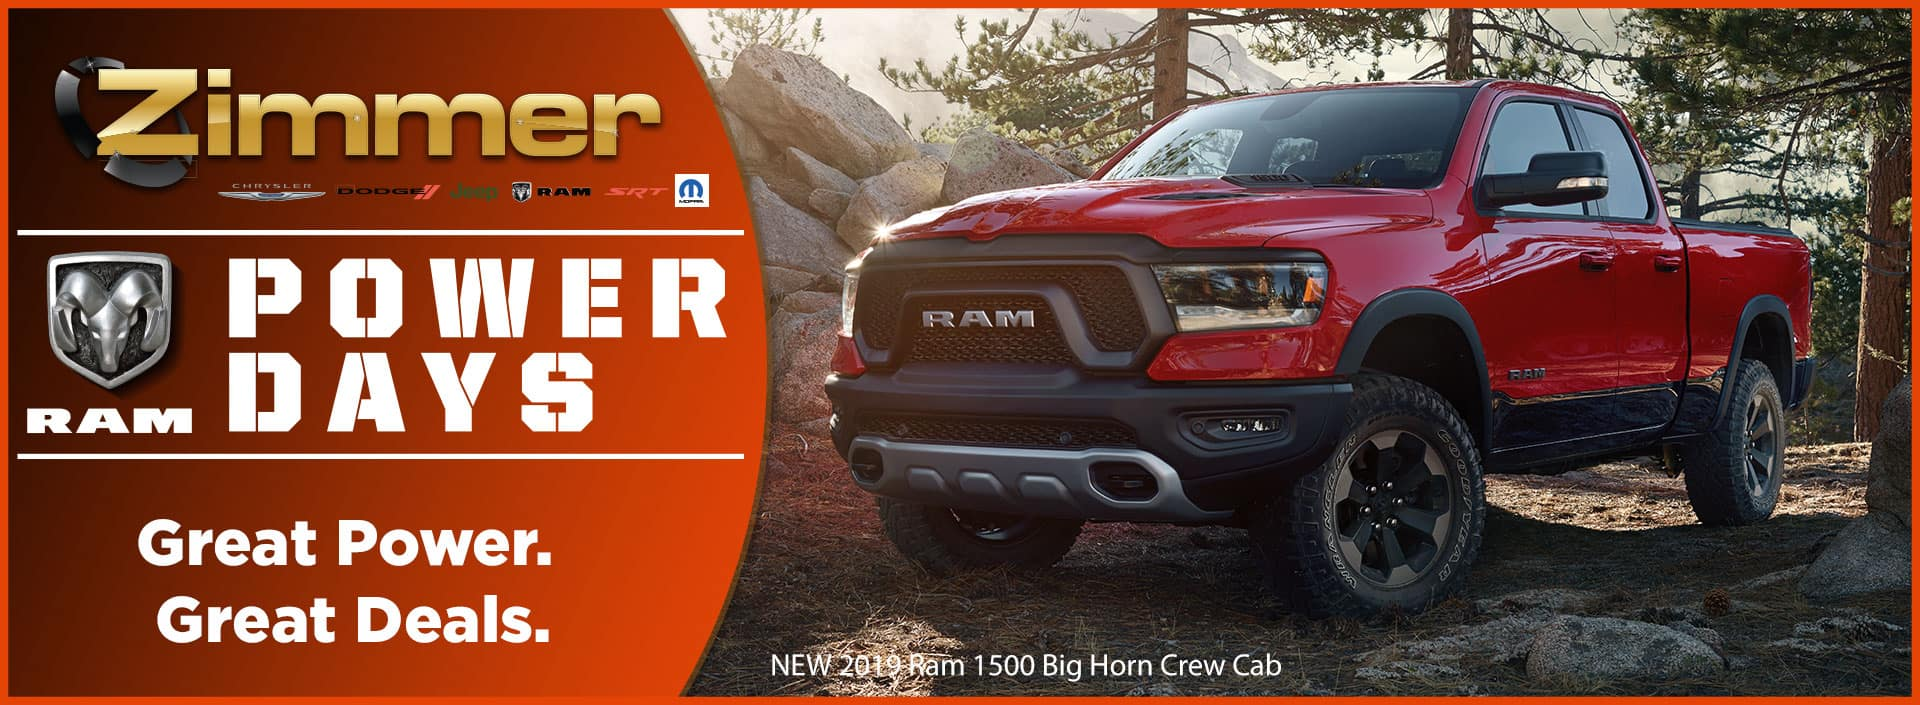 Ram Power Days at Zimmer Motors!